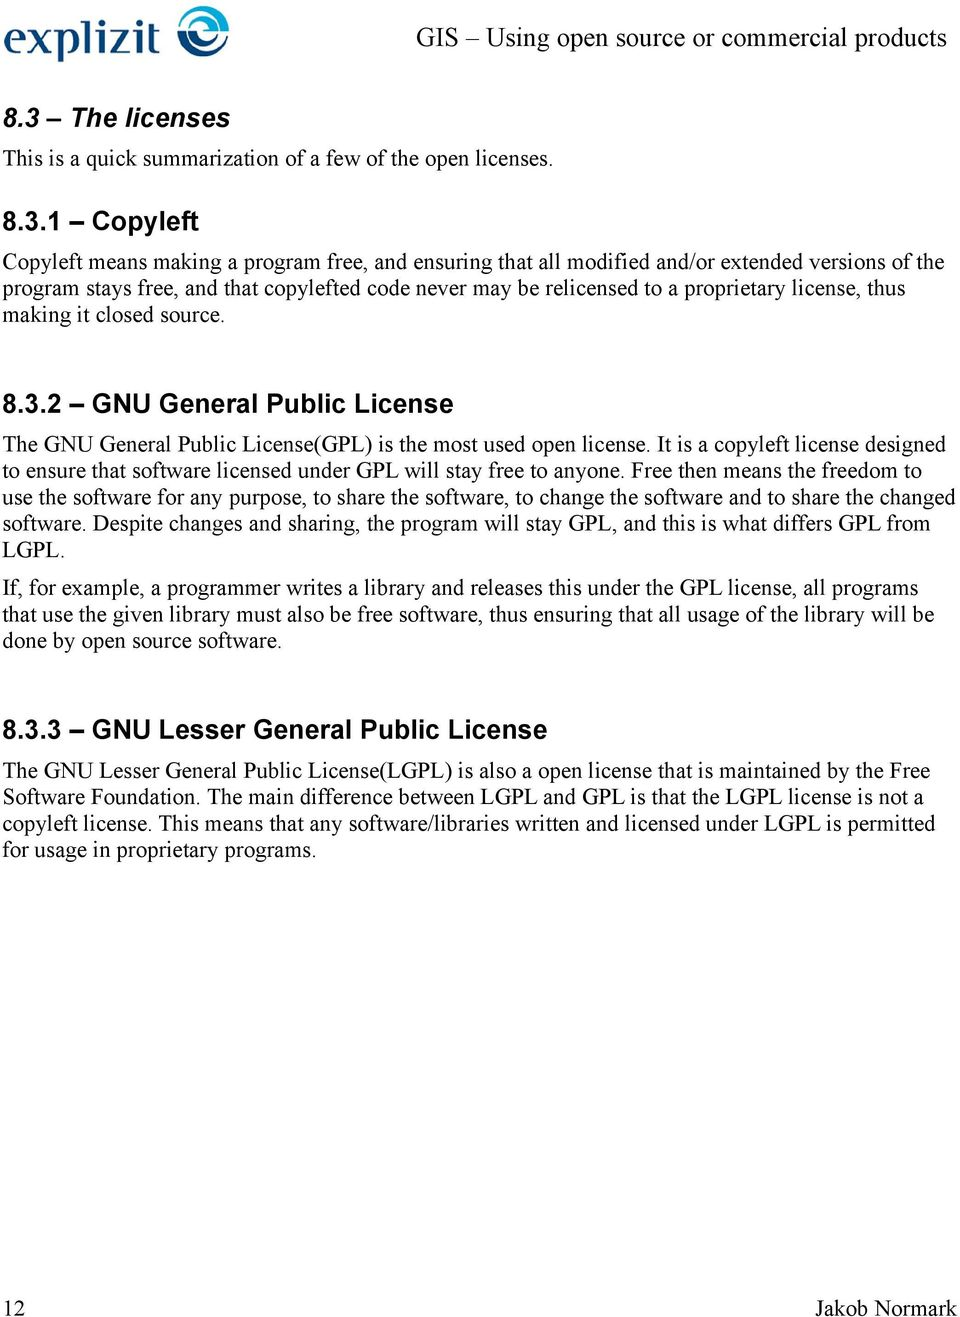 2 GNU General Public License The GNU General Public License(GPL) is the most used open license. It is a copyleft license designed to ensure that software licensed under GPL will stay free to anyone.